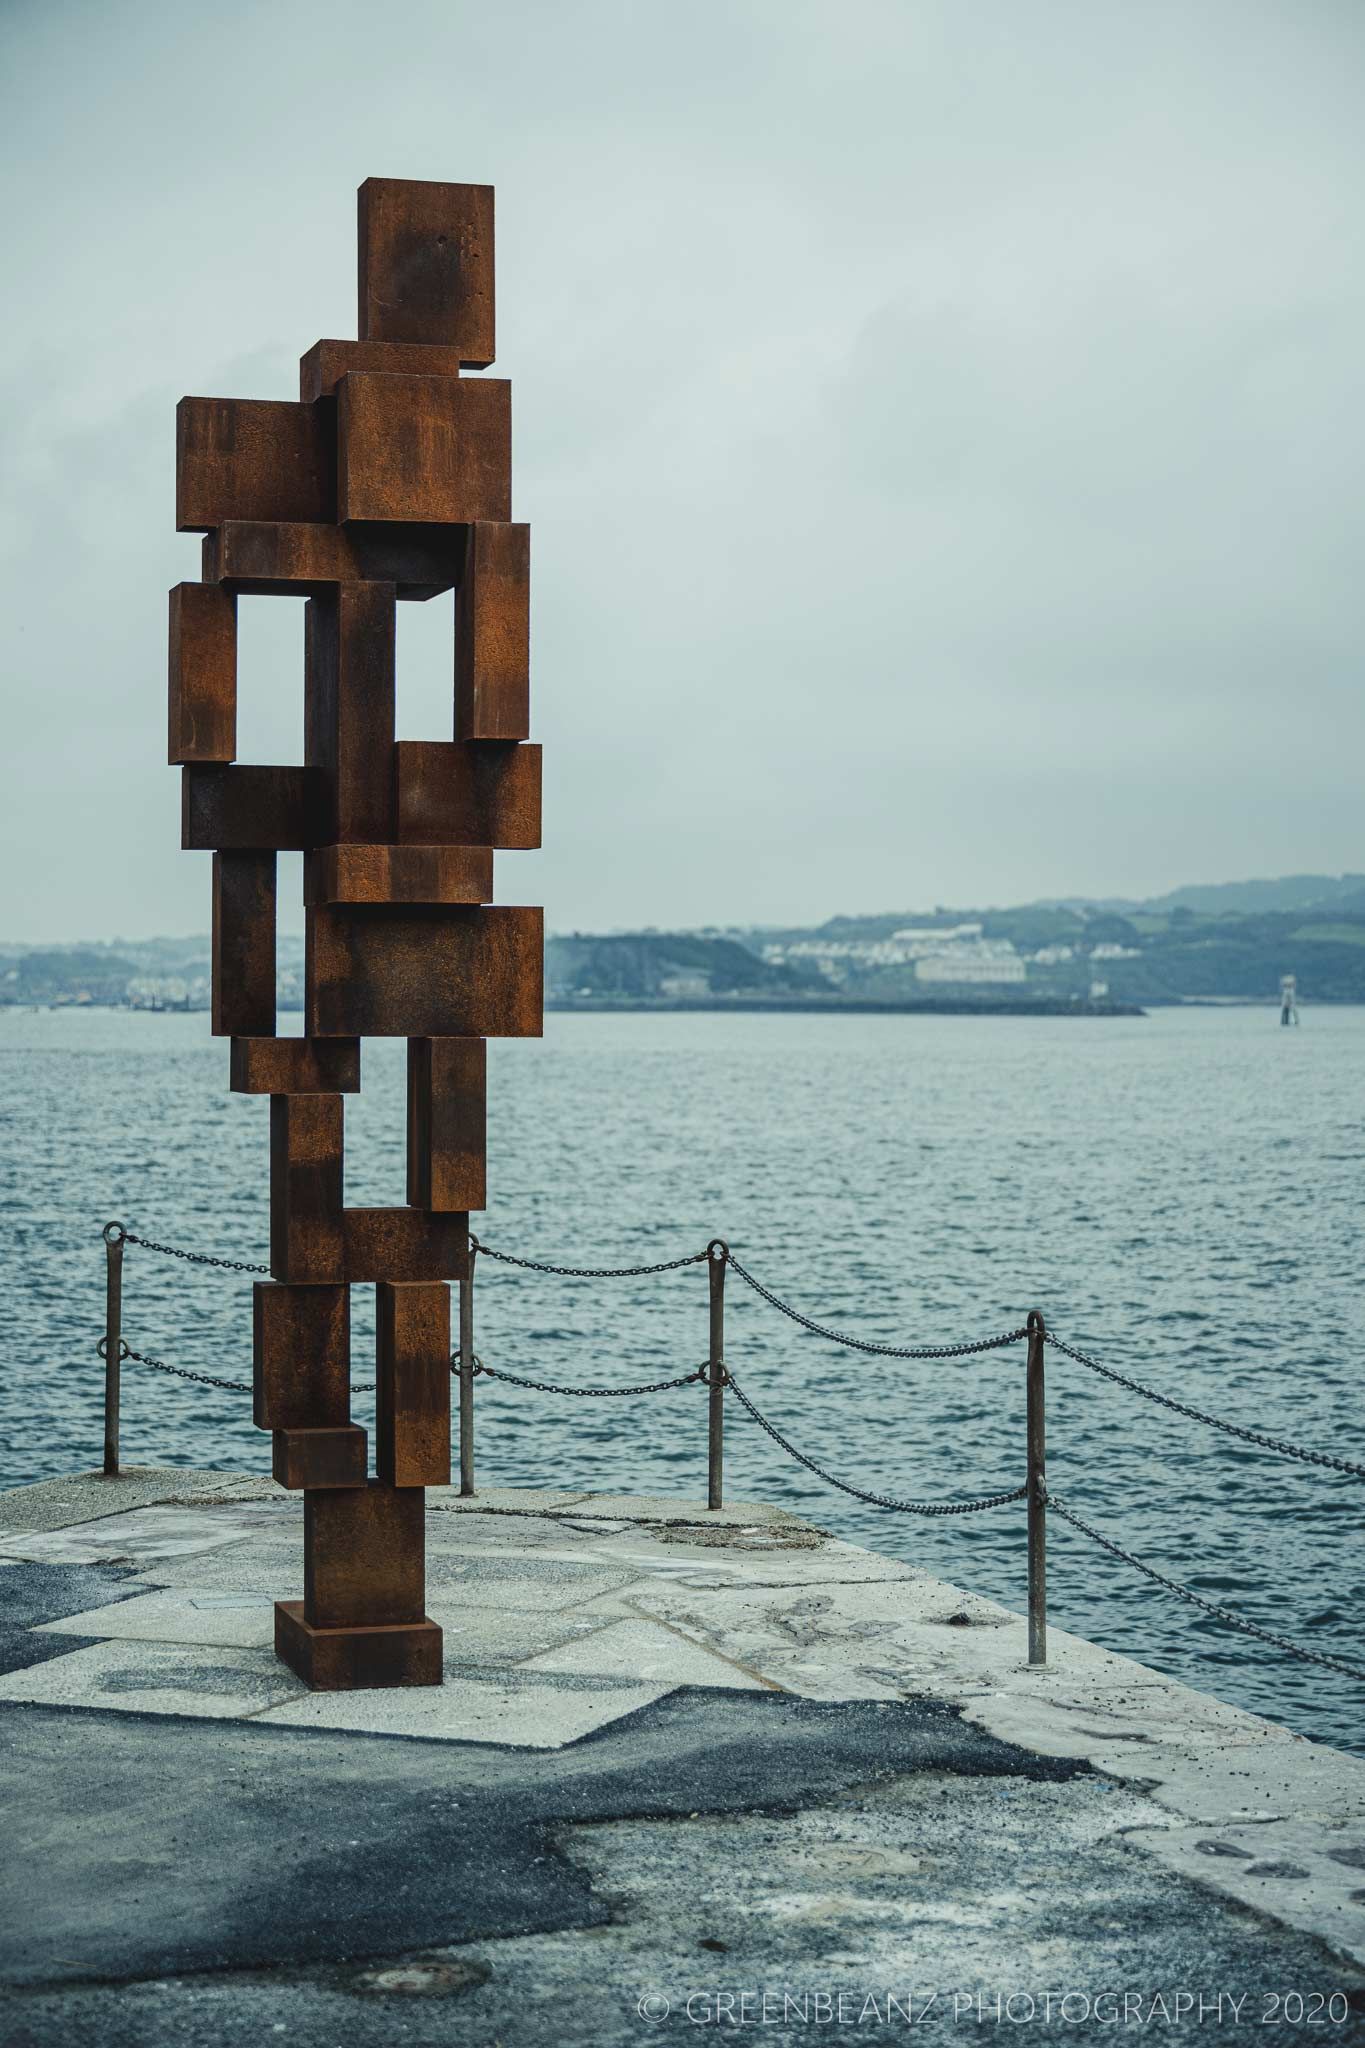 Gormley's 'Look II' commissioned by Plymouth's The Box